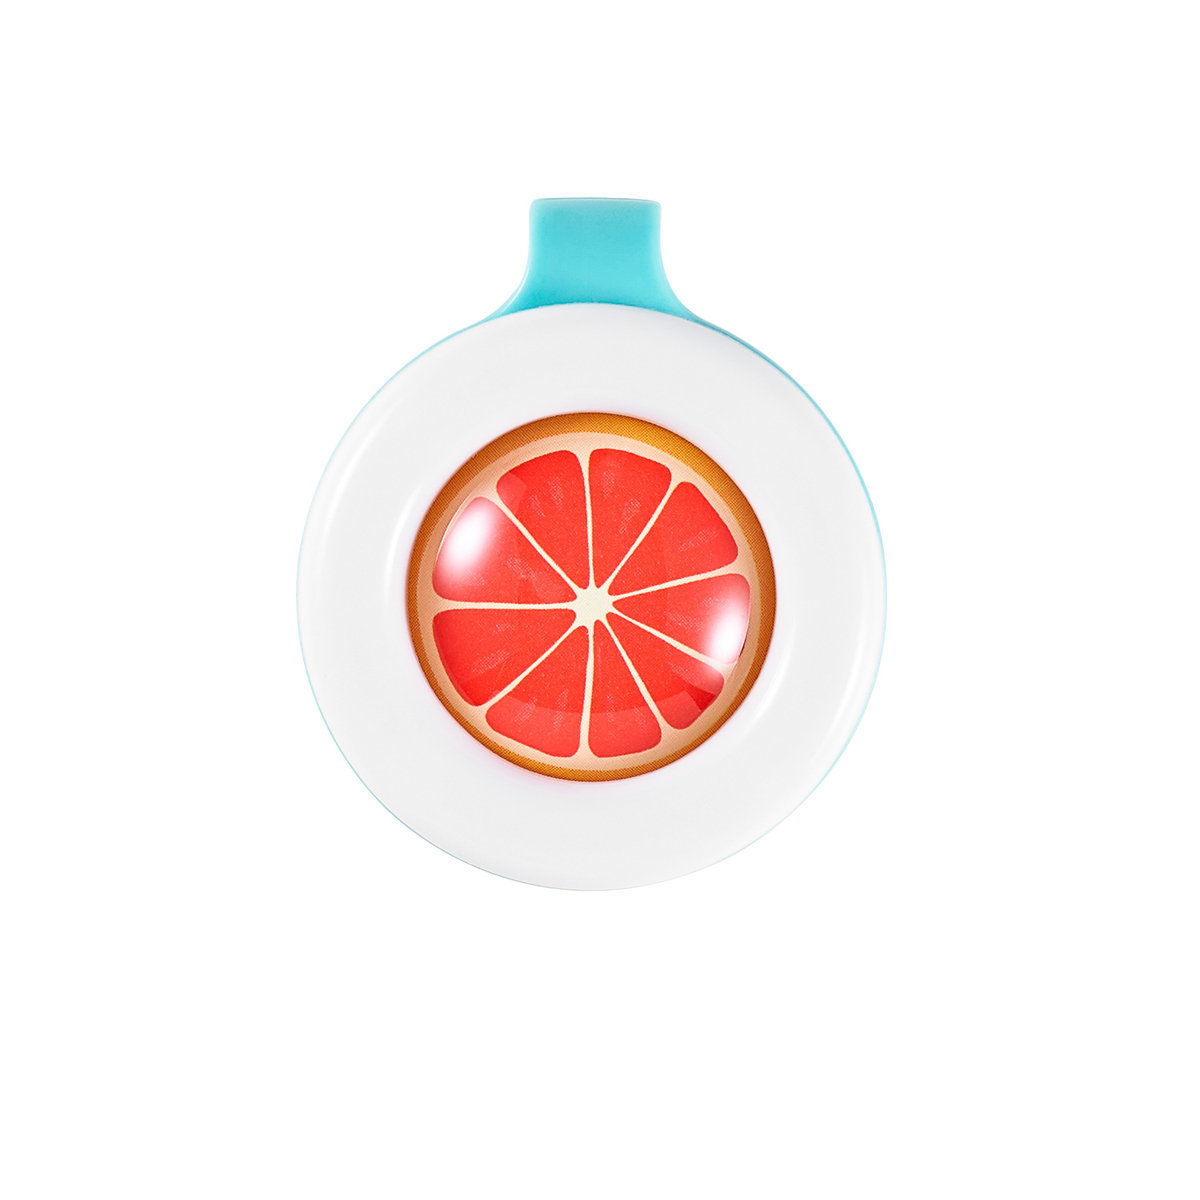 Bikit GUARD Mosquito Repellent Clip-Grapefruit